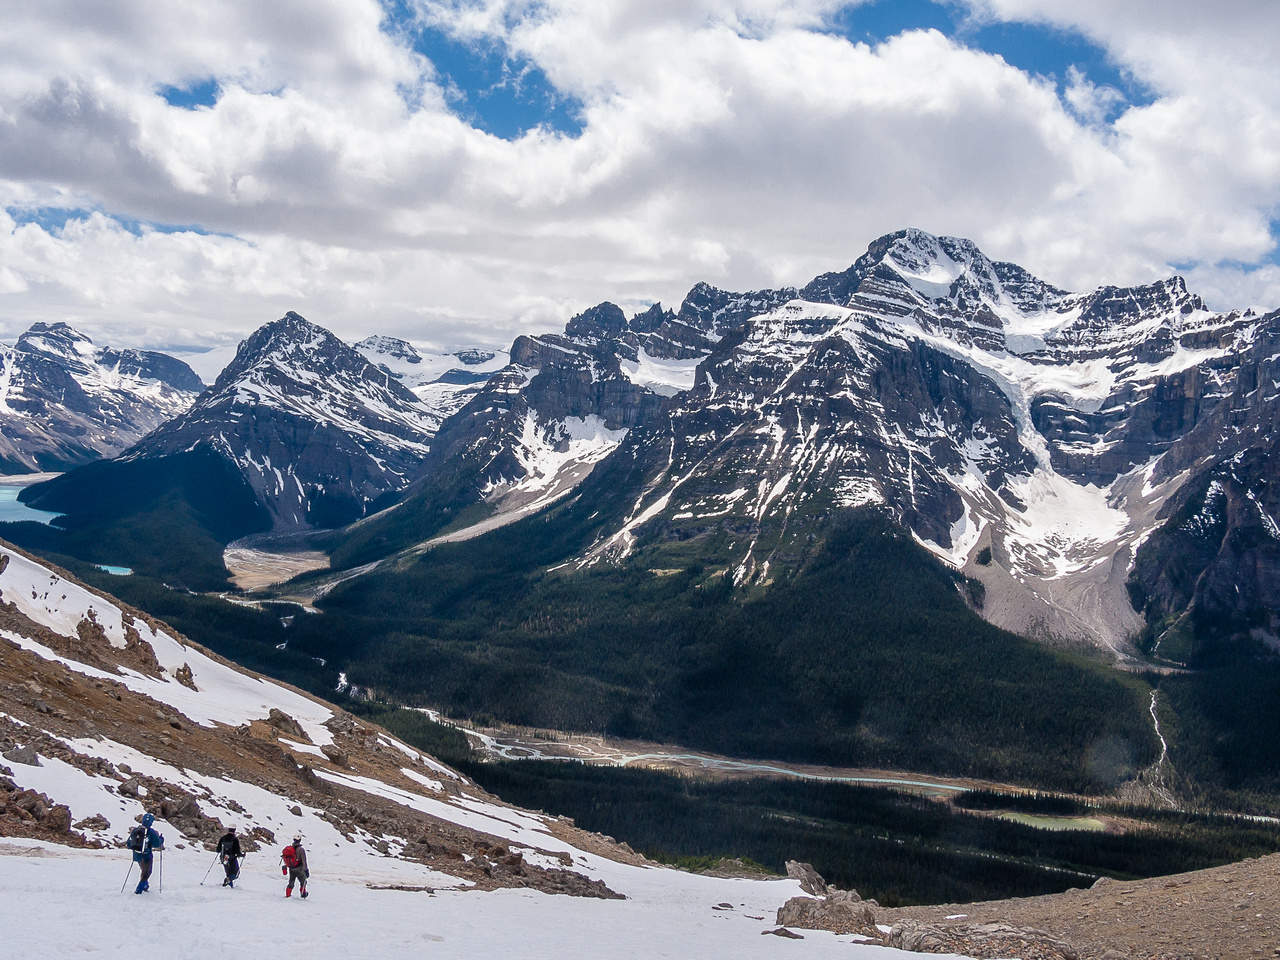 Descending back to the Icefields Parkway.